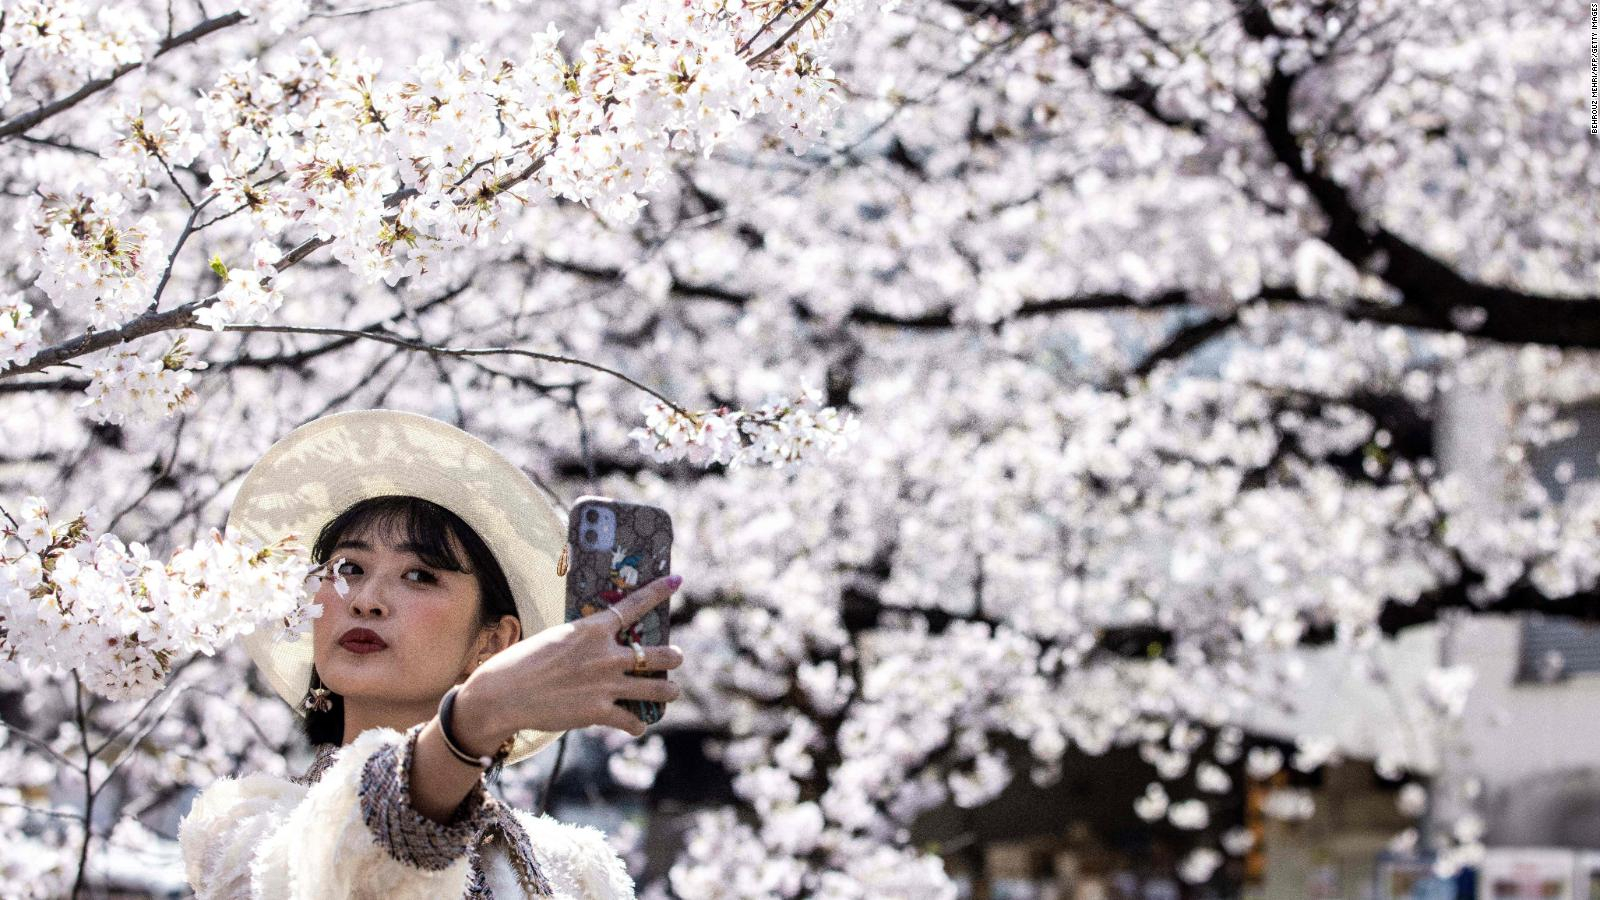 Cherry blossoms in Japan are showing alarming signs, researchers said